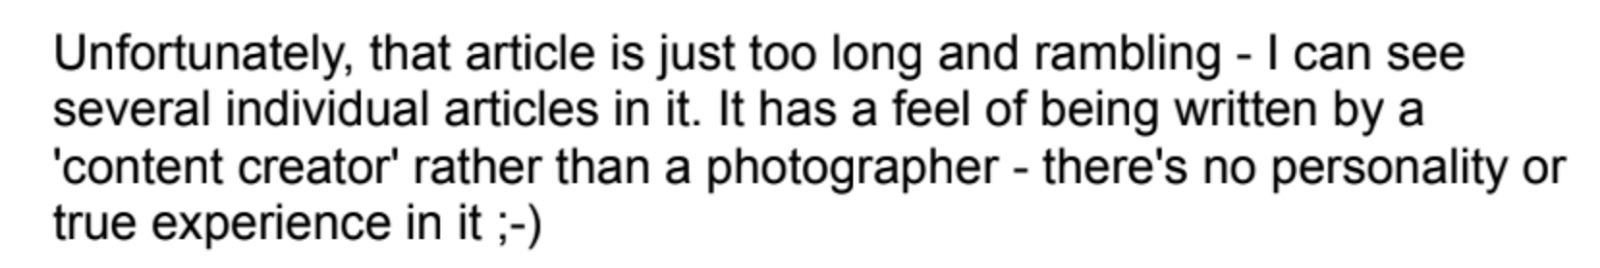 Screenshot of feedback for article saying it feels like it was written by a content creator, not a photographer.